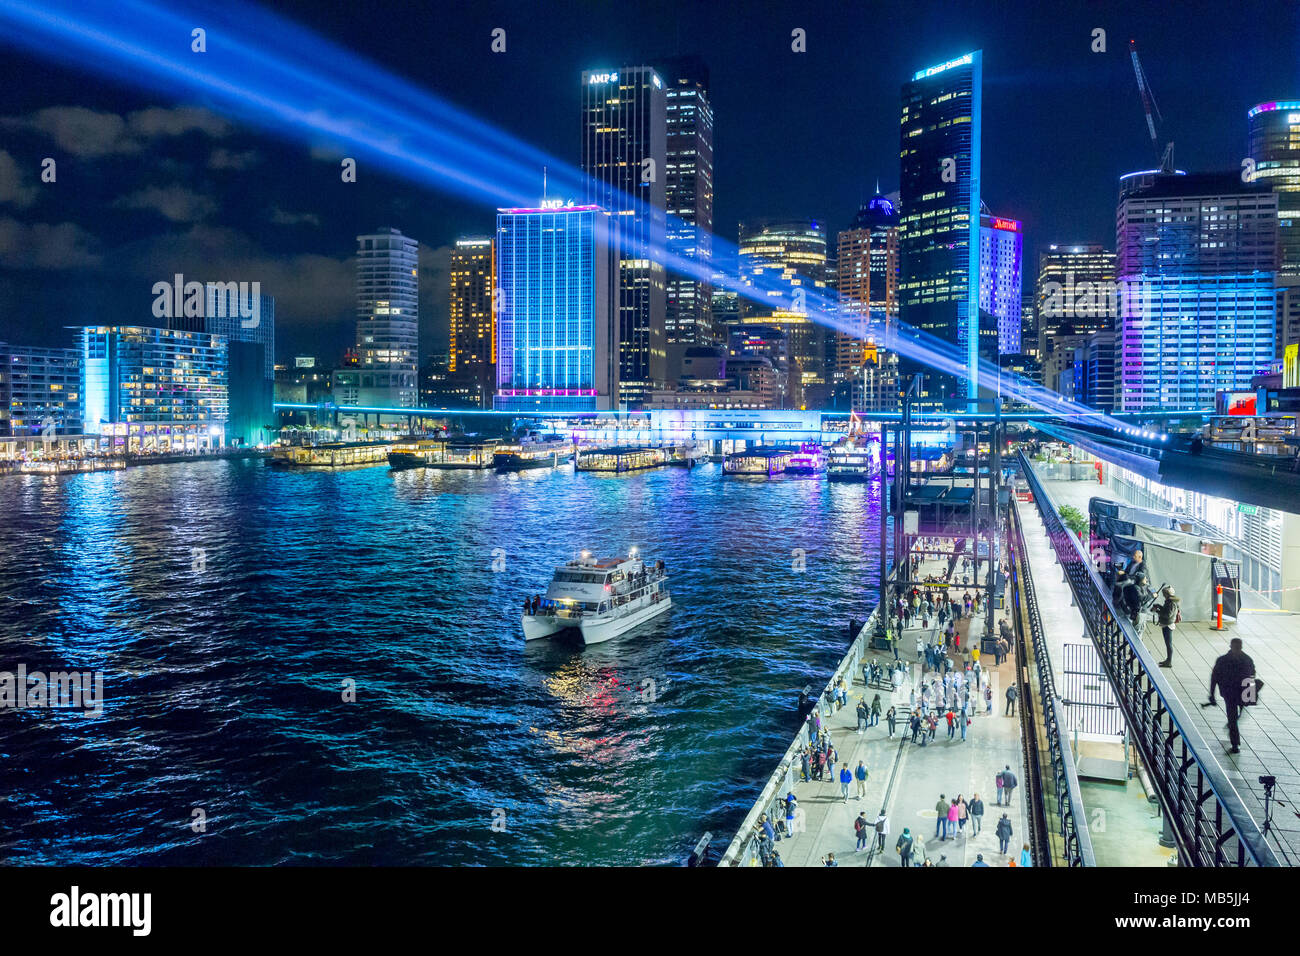 The 'Vivid Sydney' Festival takes place on Sydney Harbour in Sydney, Australia. The popular annual event, held on the shores of Sydney Harbour and previously known as the Vivid Festival, runs from May 26 to June 17, 2017. Pictured: Circular Quay seen from the Overseas Passenger Terminal. - Stock Image